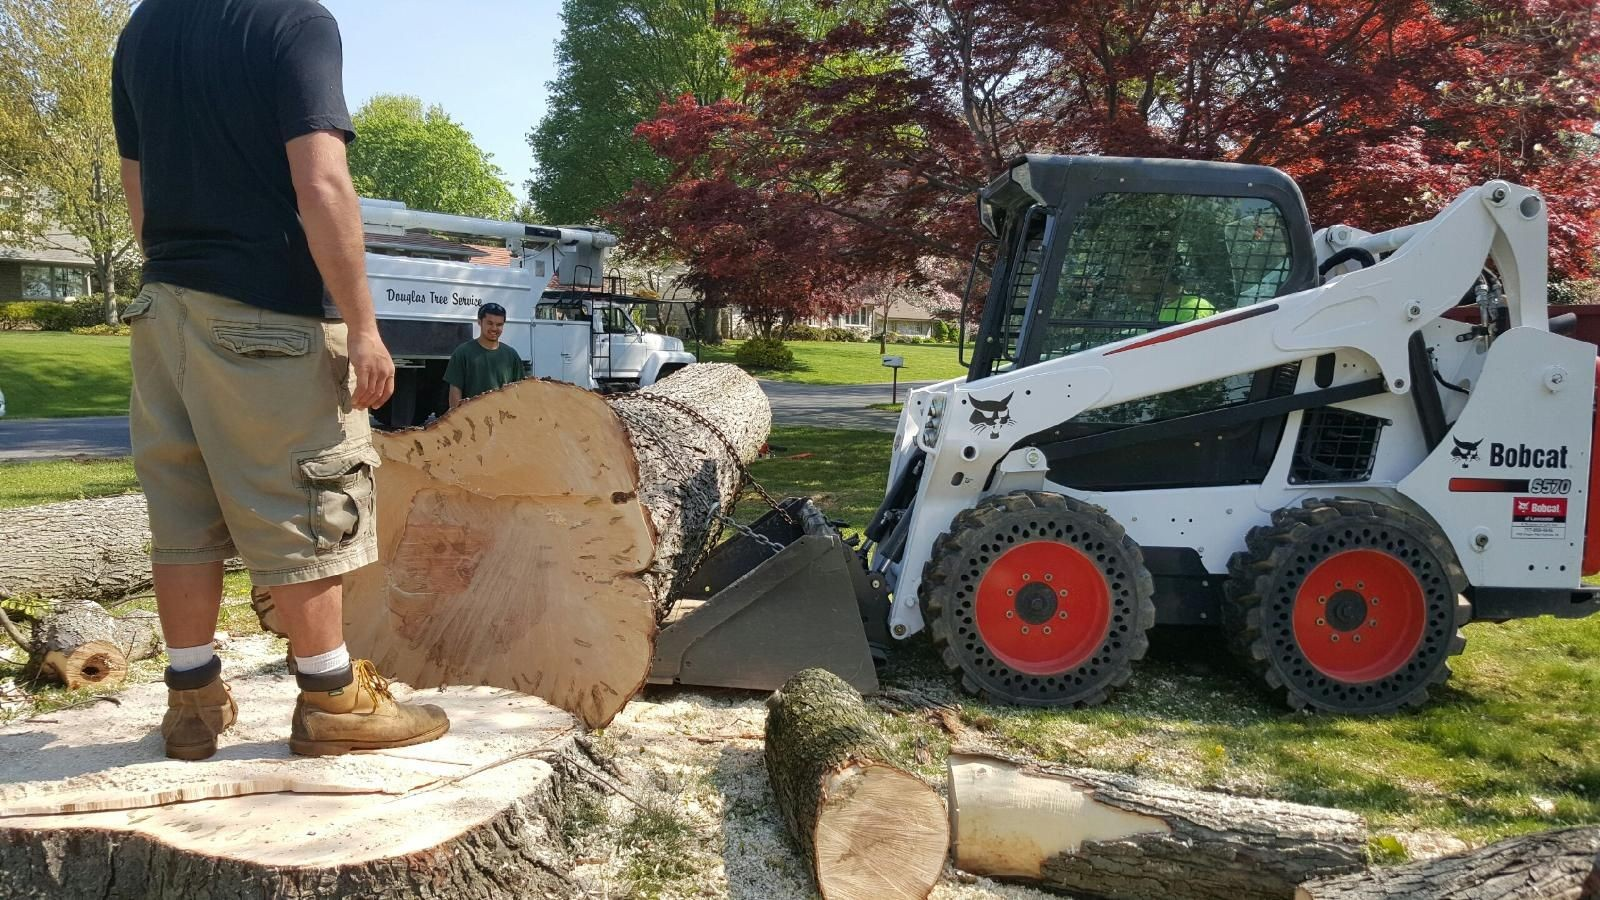 Grossmont-El Cajon CA Tree Trimming and Stump Grinding Services-We Offer Tree Trimming Services, Tree Removal, Tree Pruning, Tree Cutting, Residential and Commercial Tree Trimming Services, Storm Damage, Emergency Tree Removal, Land Clearing, Tree Companies, Tree Care Service, Stump Grinding, and we're the Best Tree Trimming Company Near You Guaranteed!